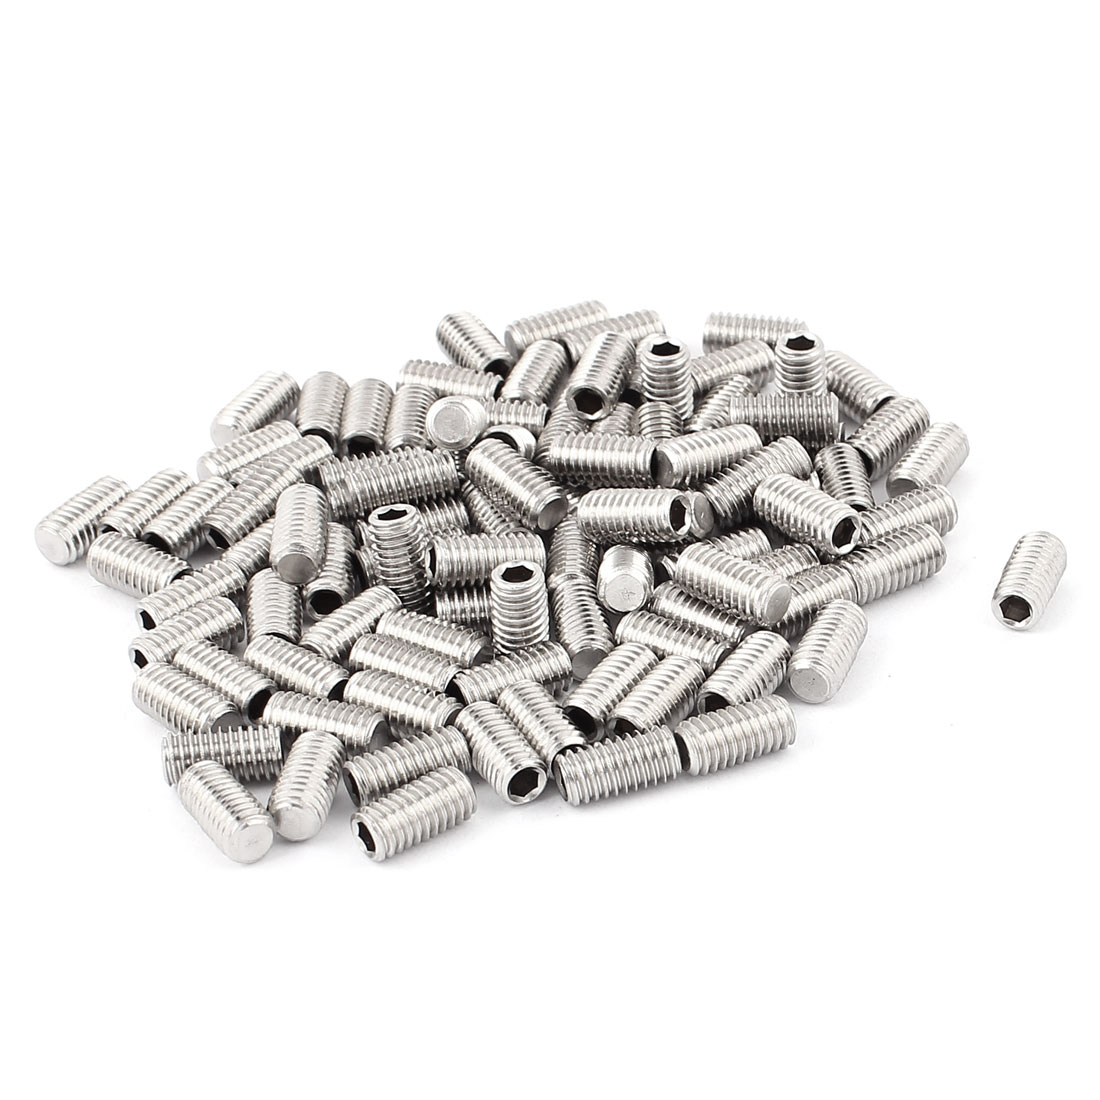 100pcs Stainless Steel M6 Flat Point Grub Screws Hex Socket Set Screw